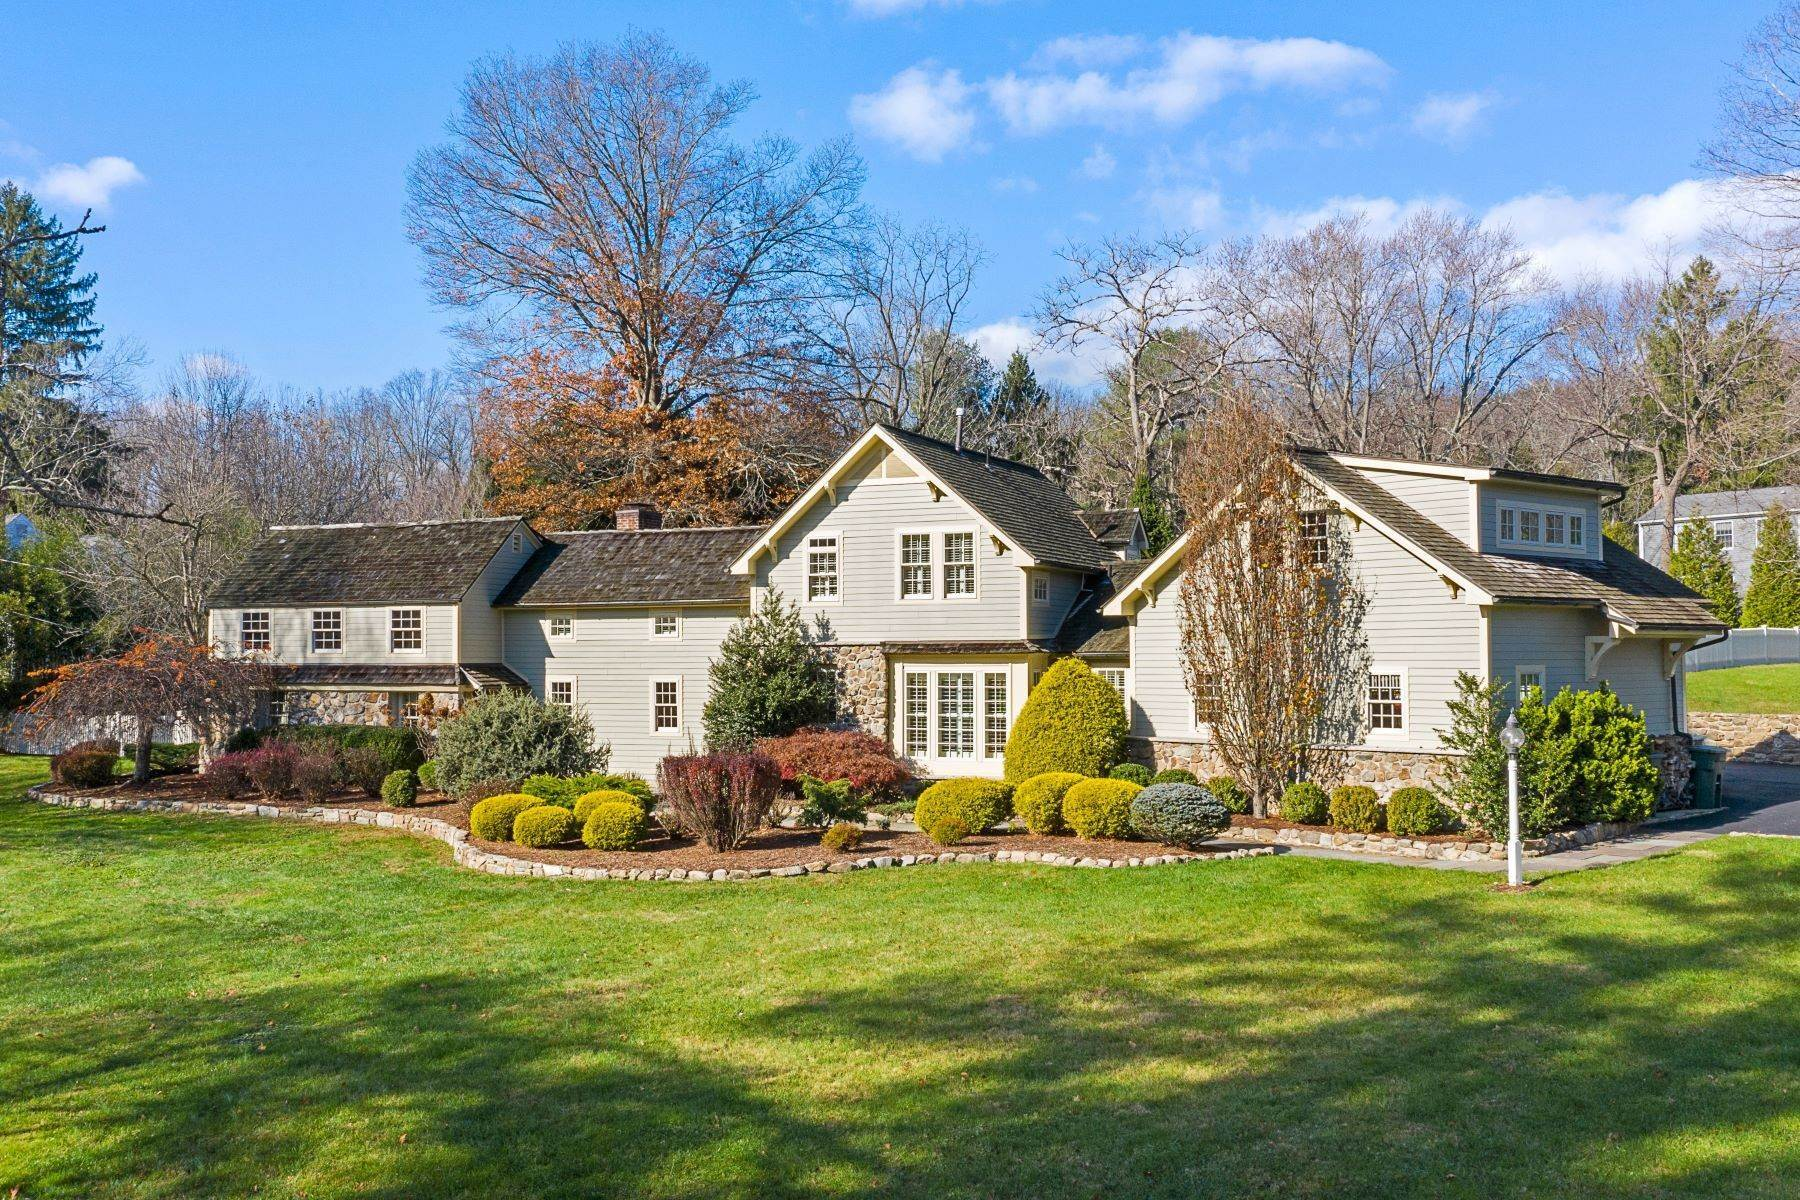 Single Family Homes for Sale at Rebuilt and Renovated Brookside Residence 28 E Main Street Mendham, New Jersey 07945 United States